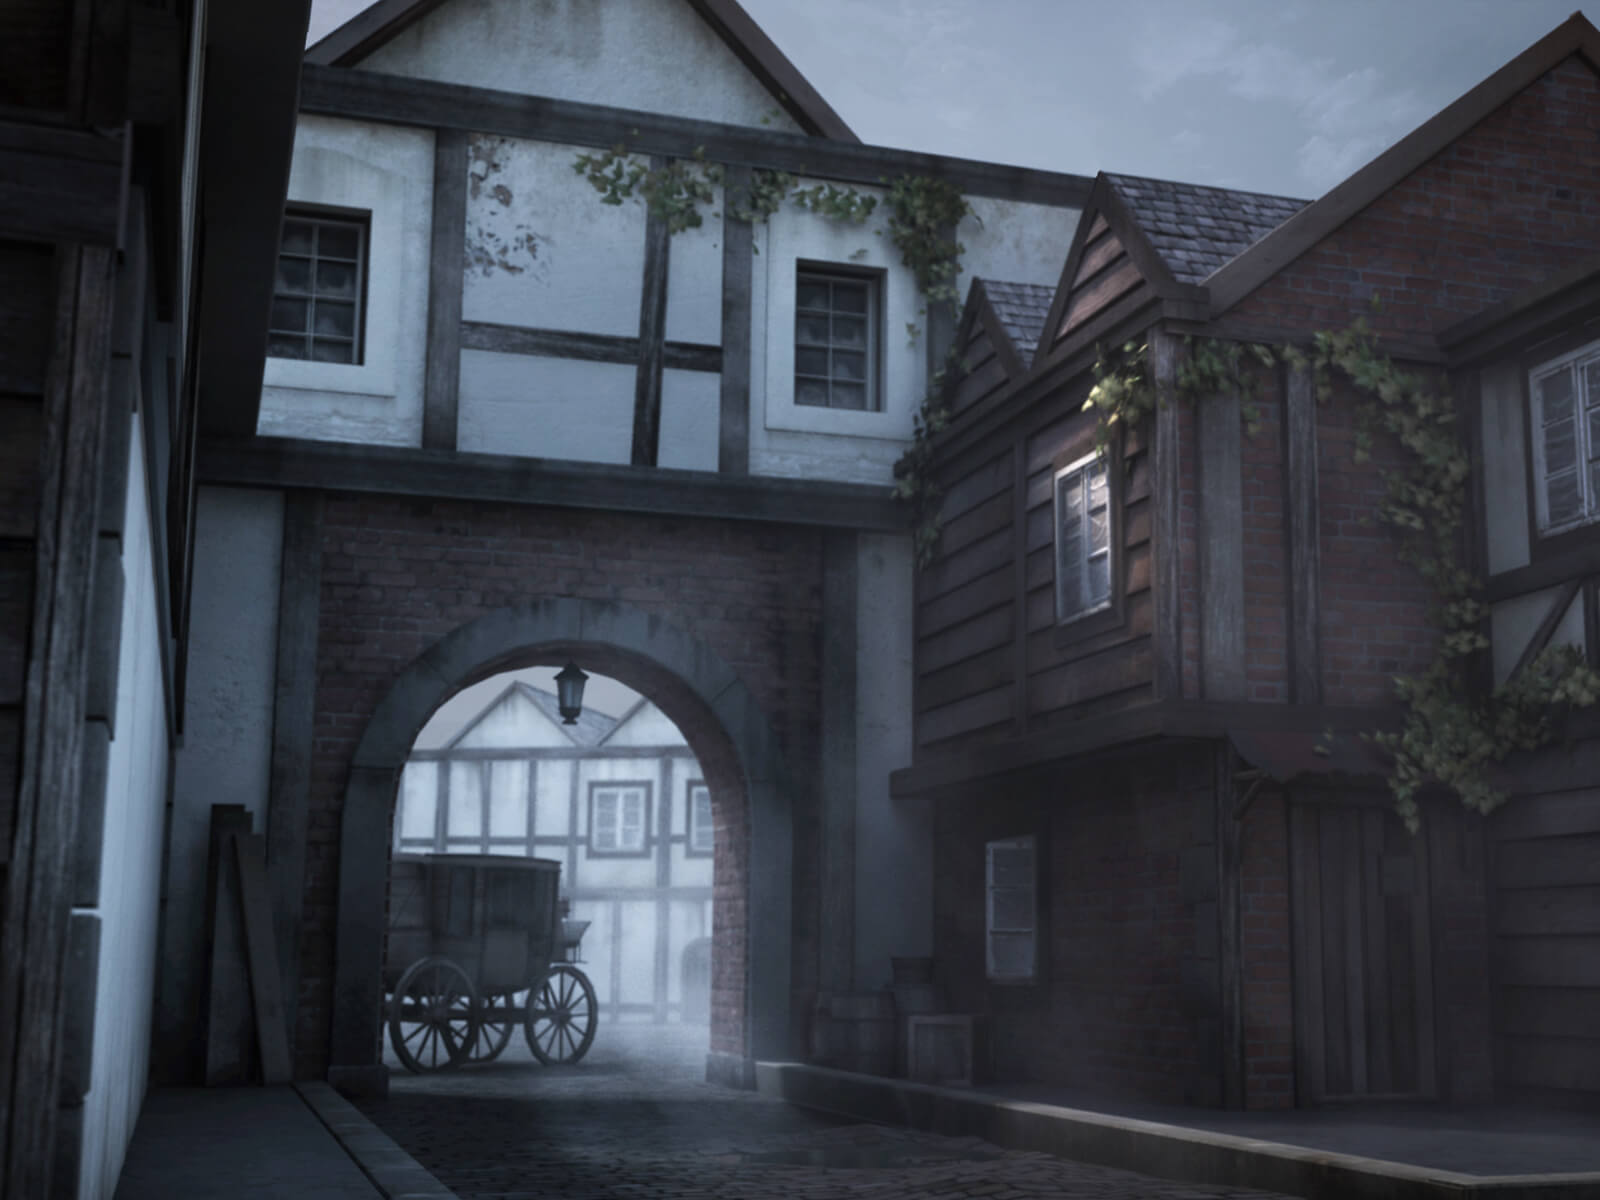 computer-generated 3D environment with darkened tudor-style buildings and a carriage